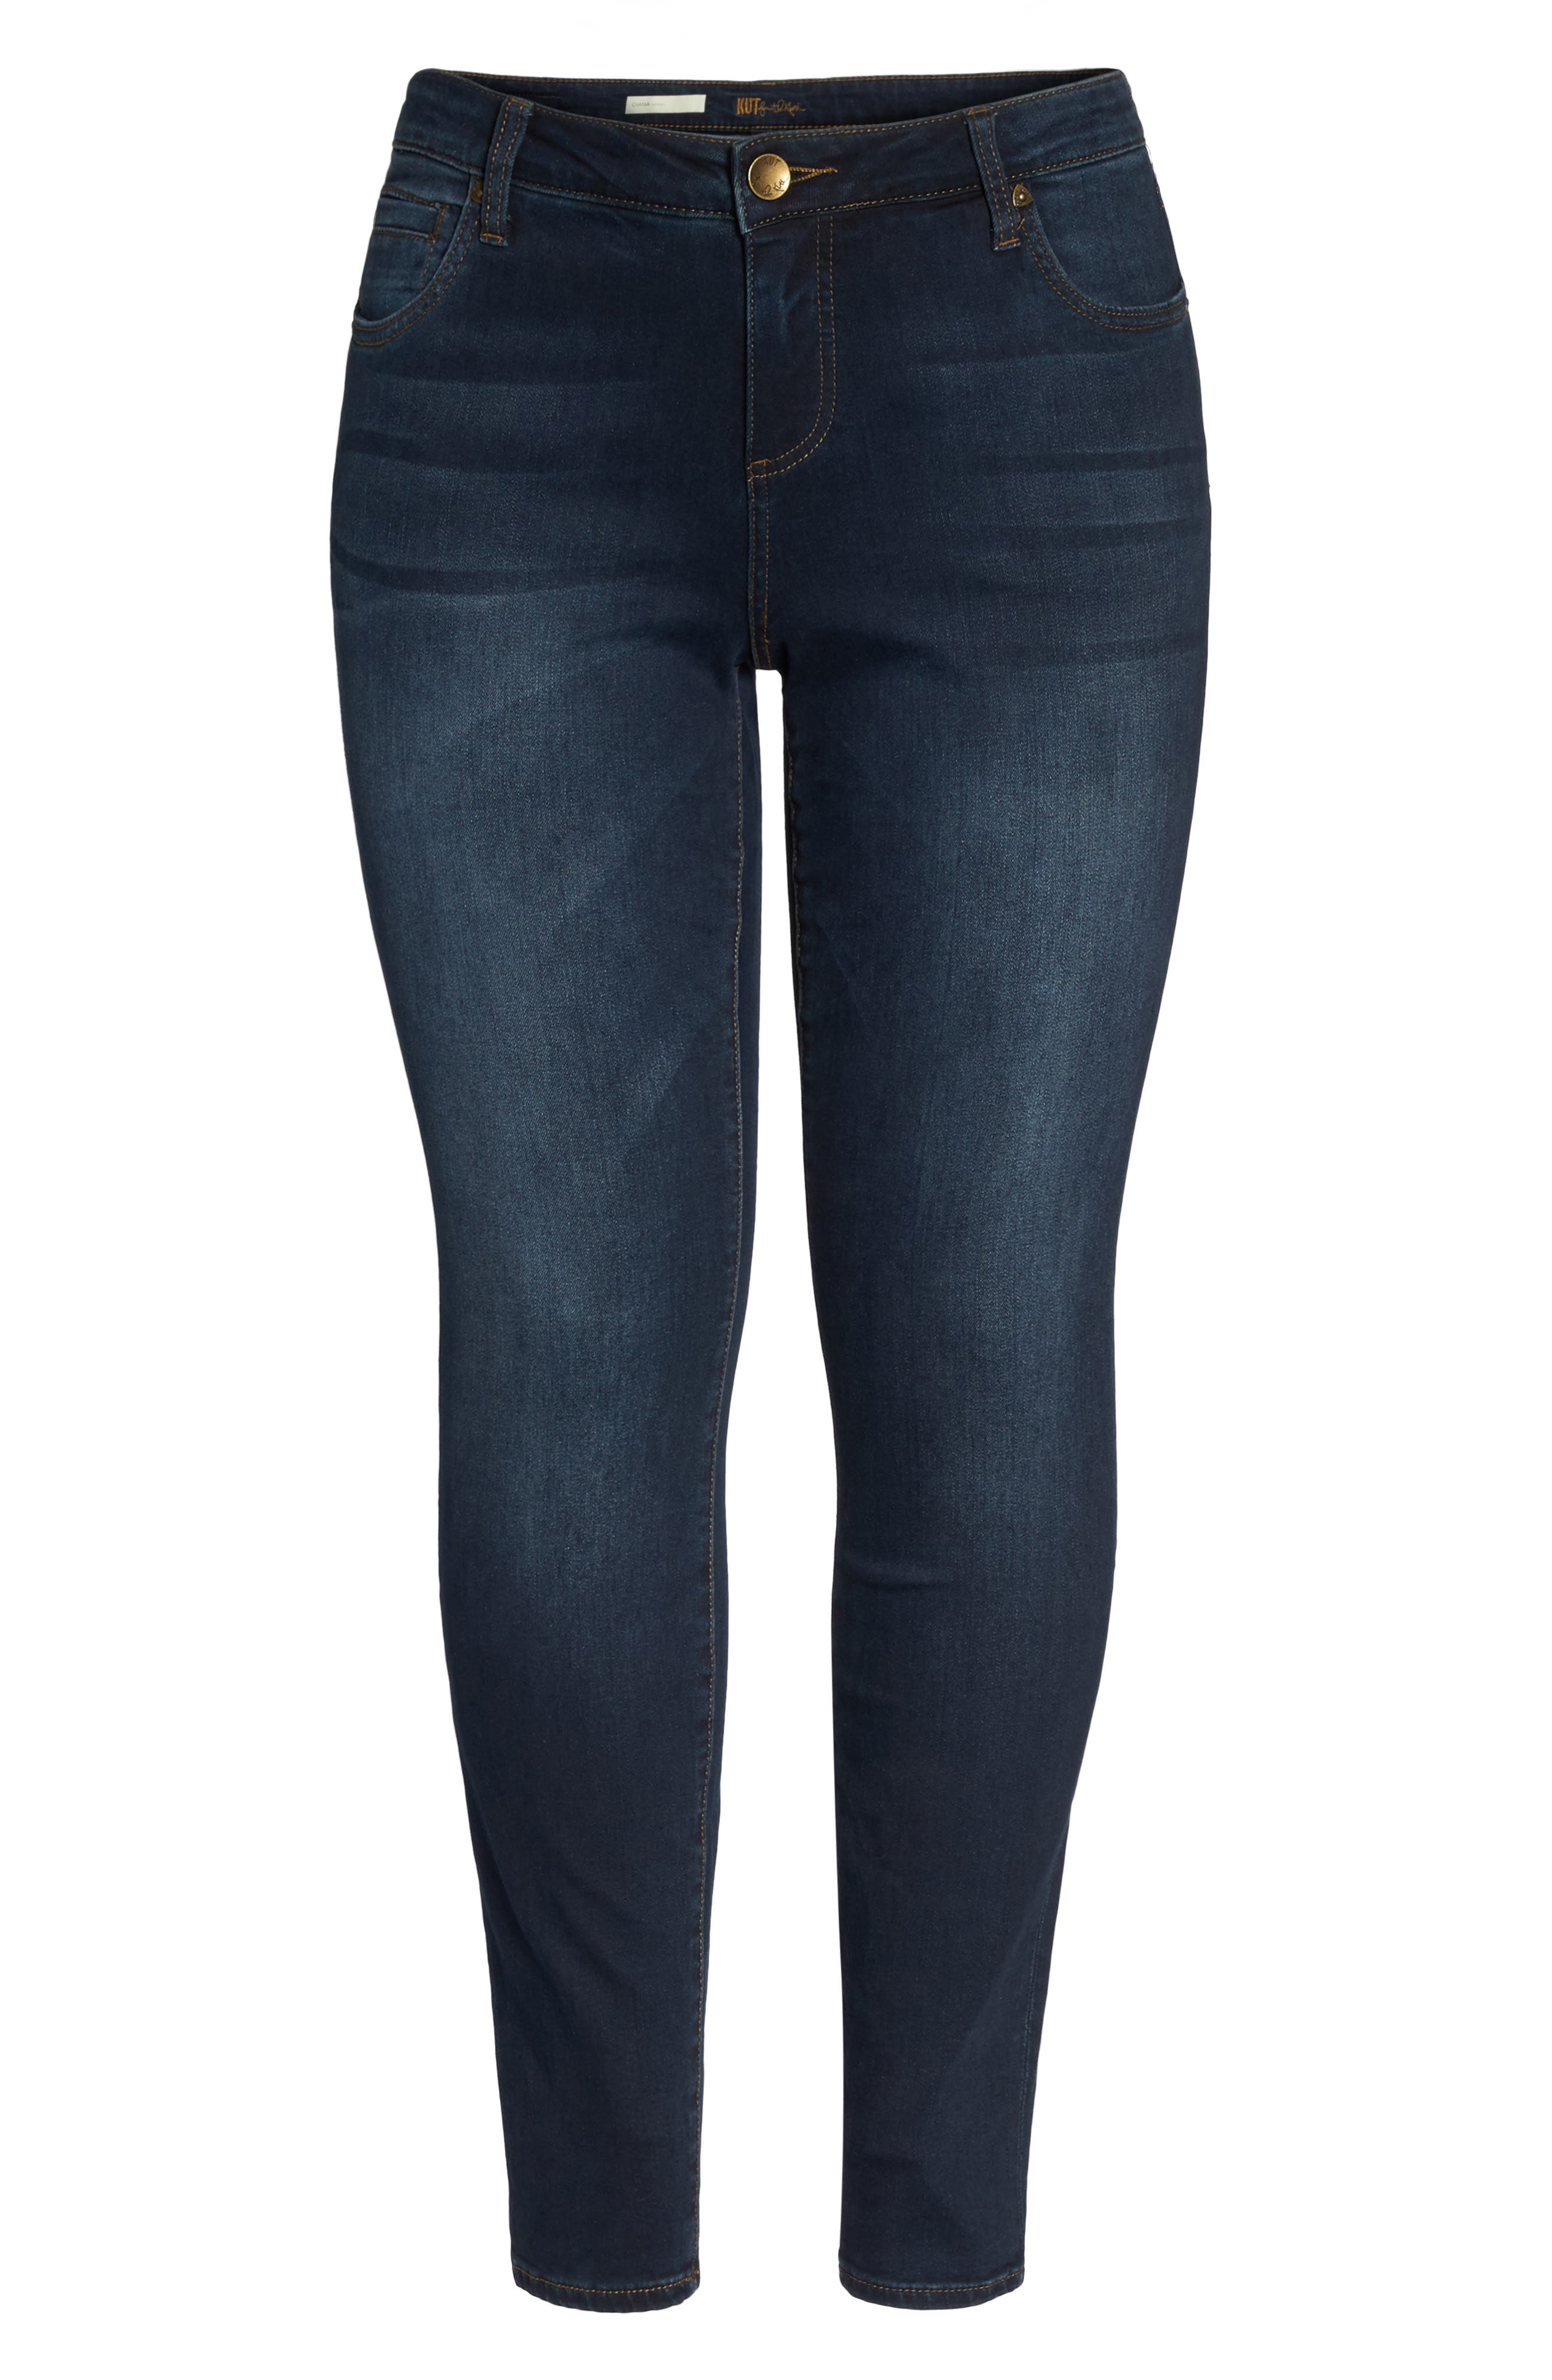 KUT FROM THE KLOTH,                             Diana Skinny Jeans,                             Alternate thumbnail 6, color,                             412